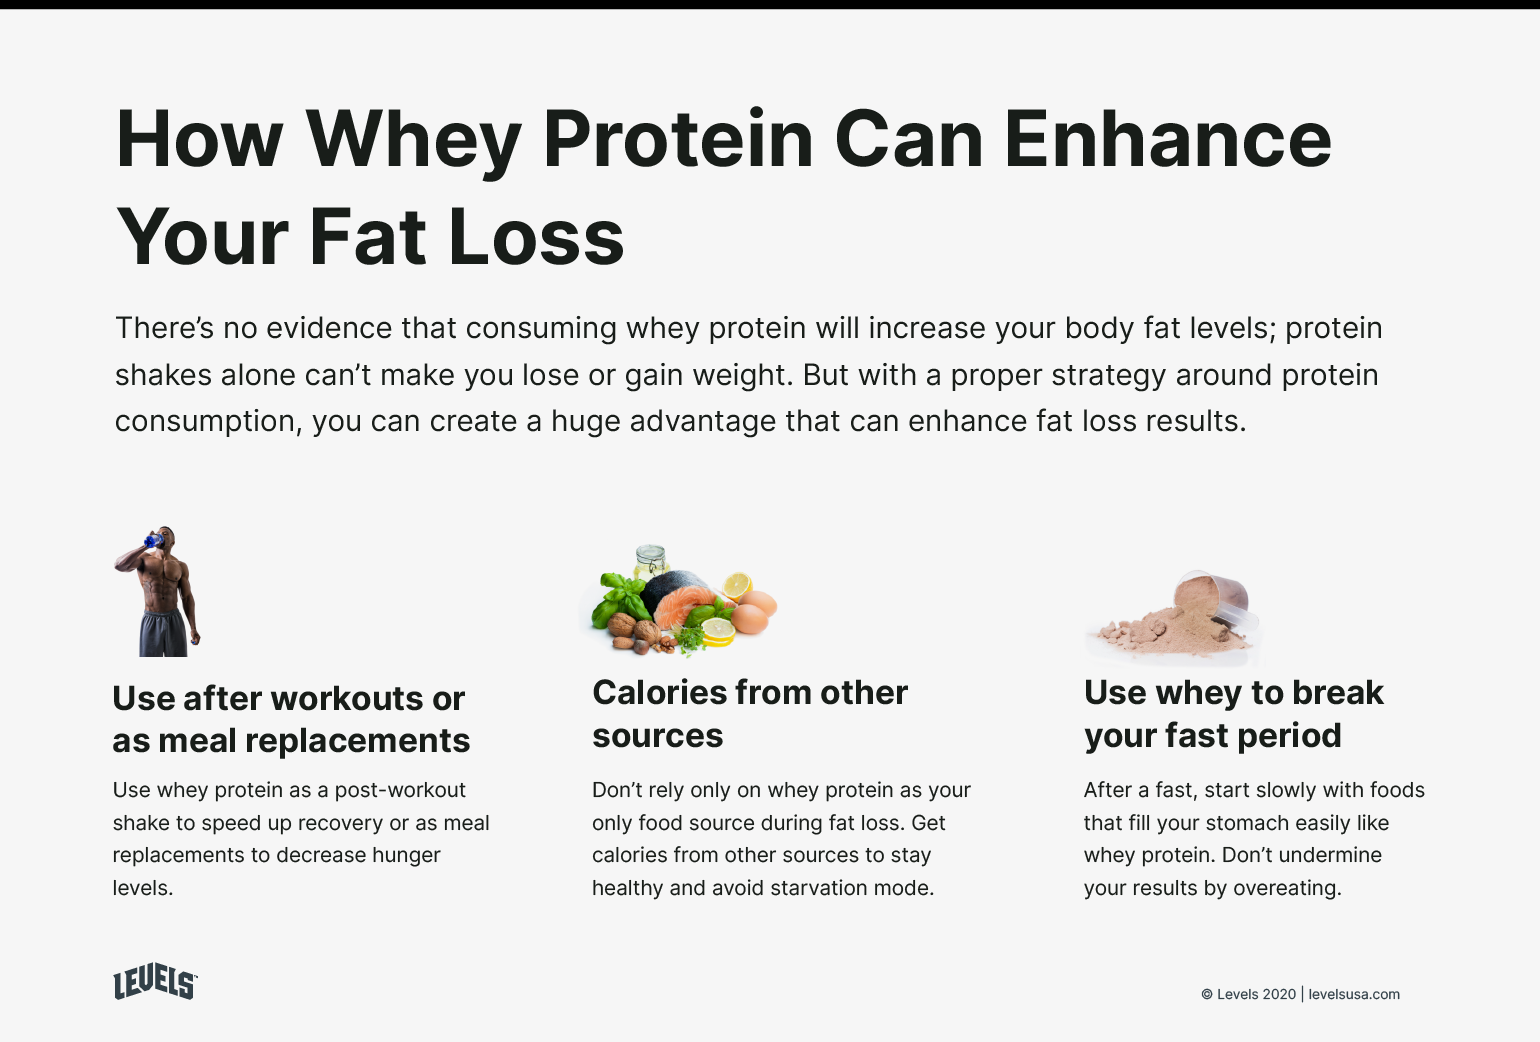 Can Whey Protein Make You Fat? - Infographic